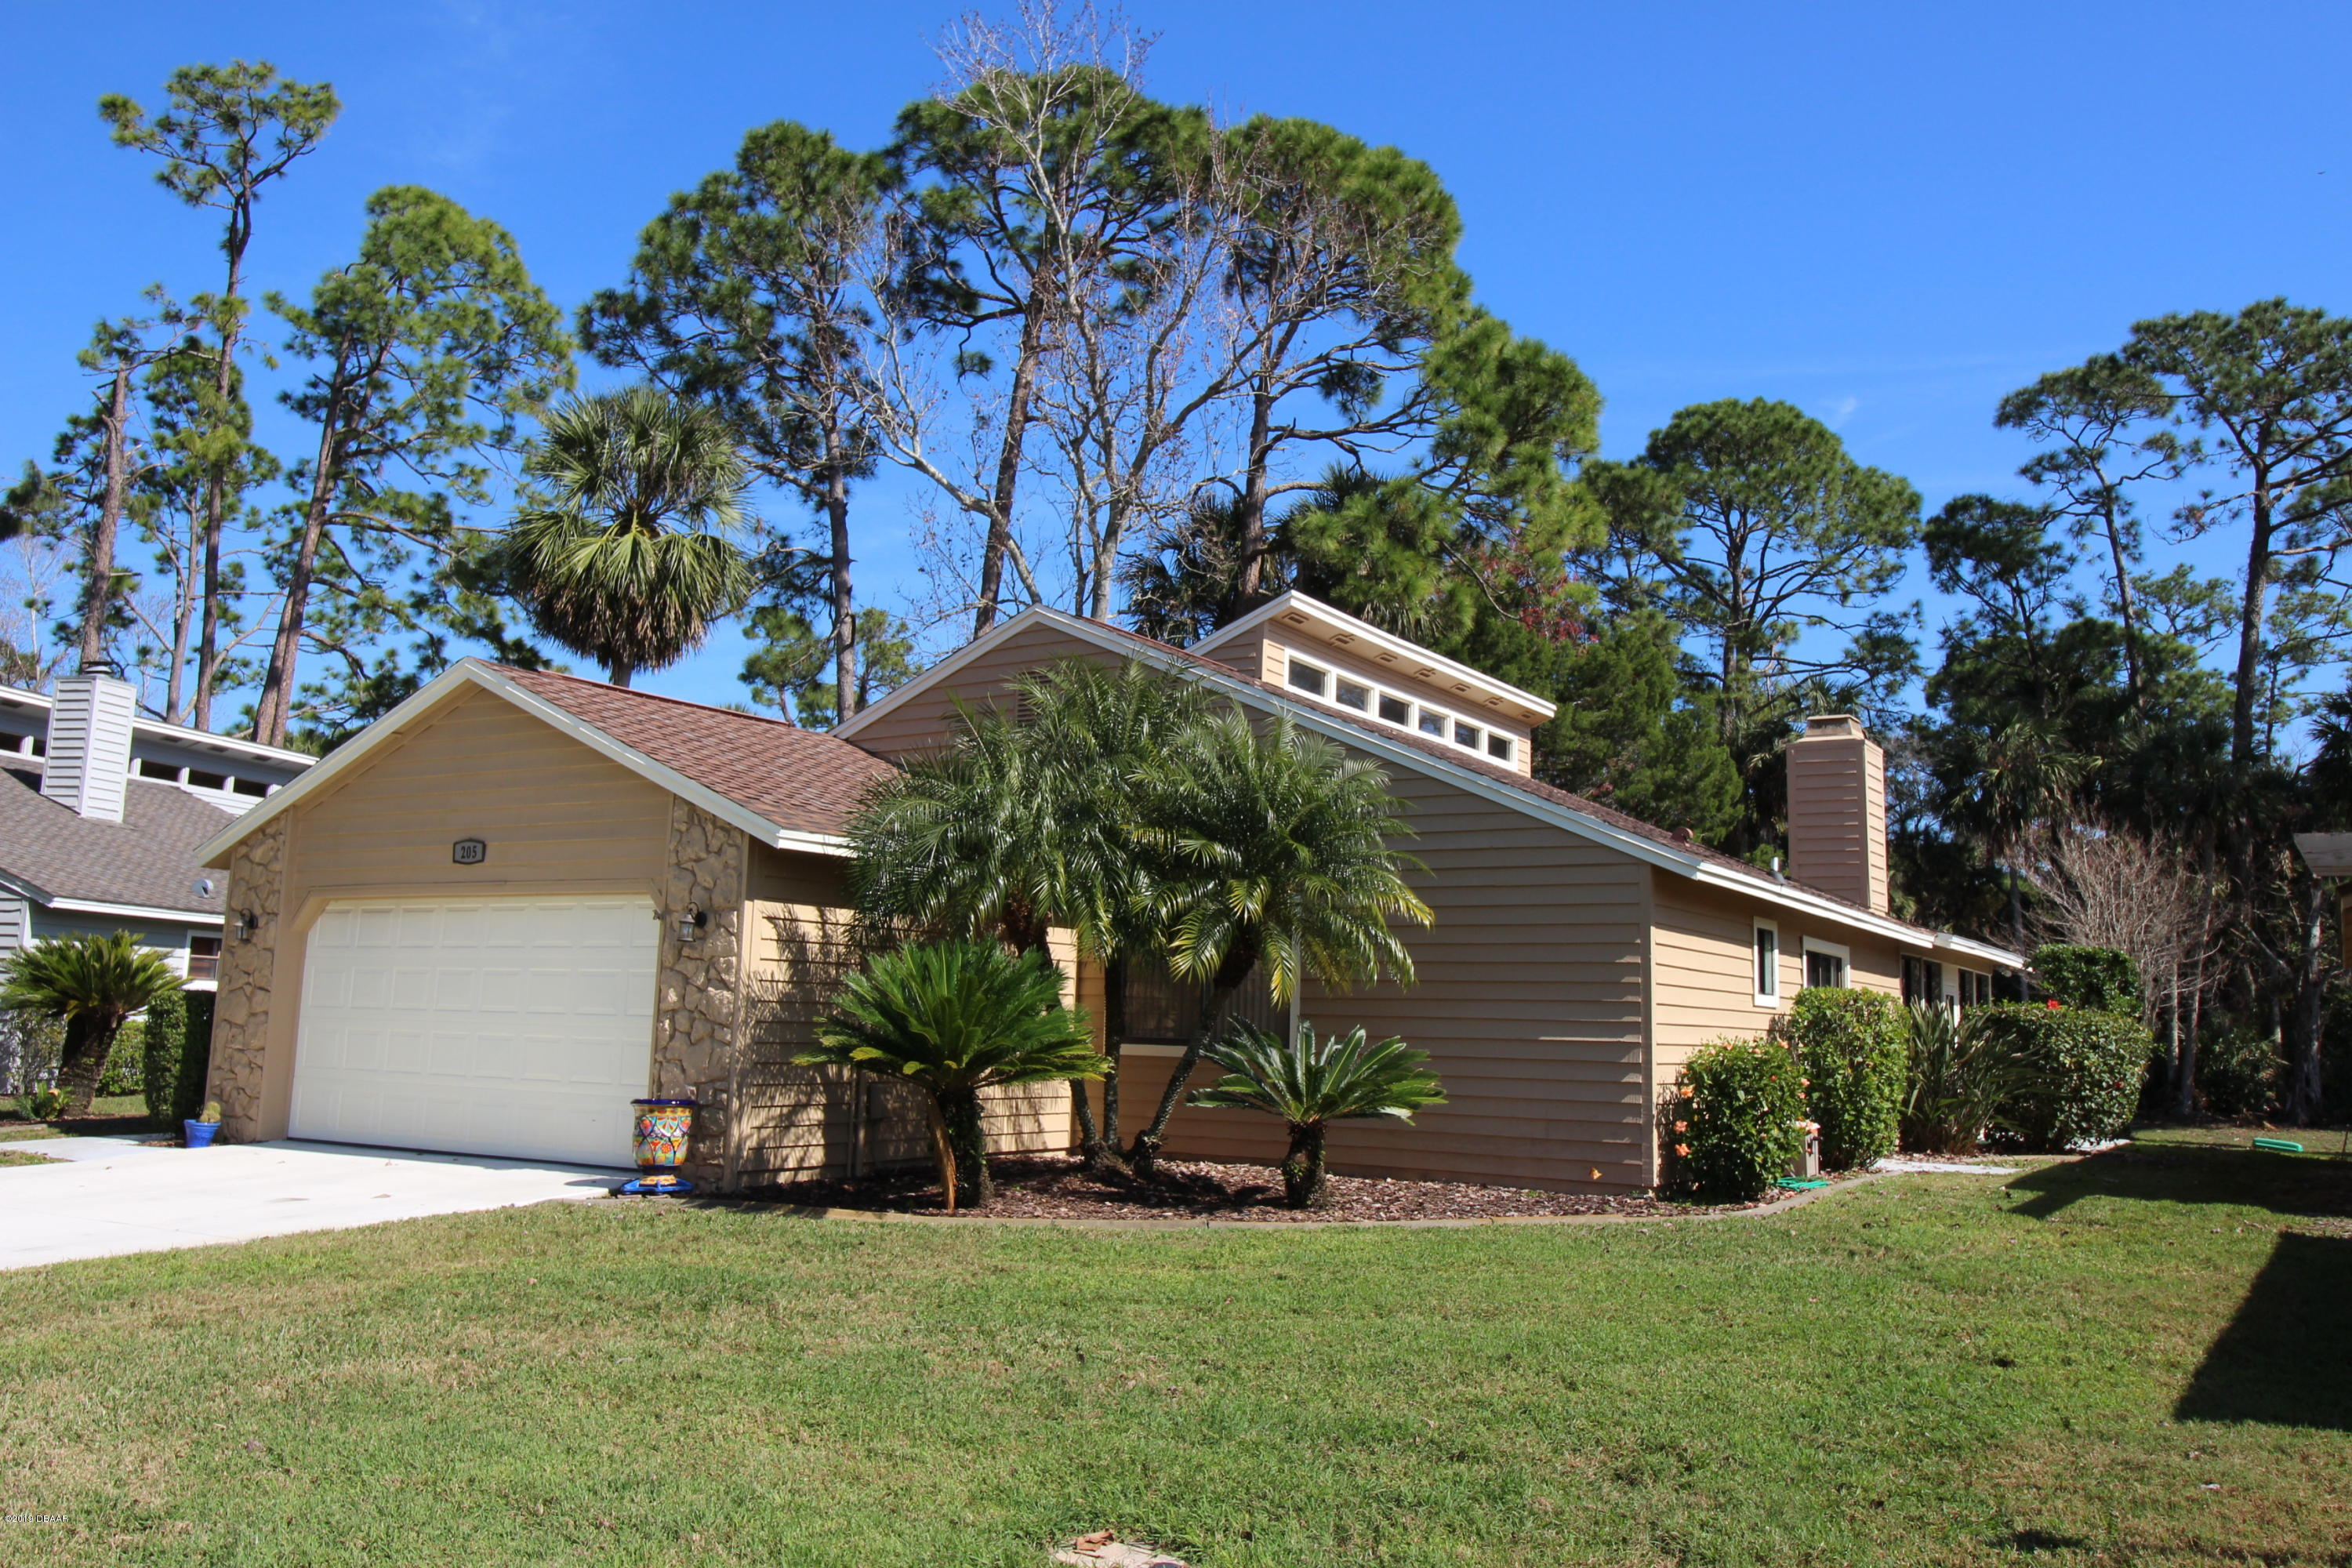 One of South Daytona 2 Bedroom Homes for Sale at 205 S Gull Drive